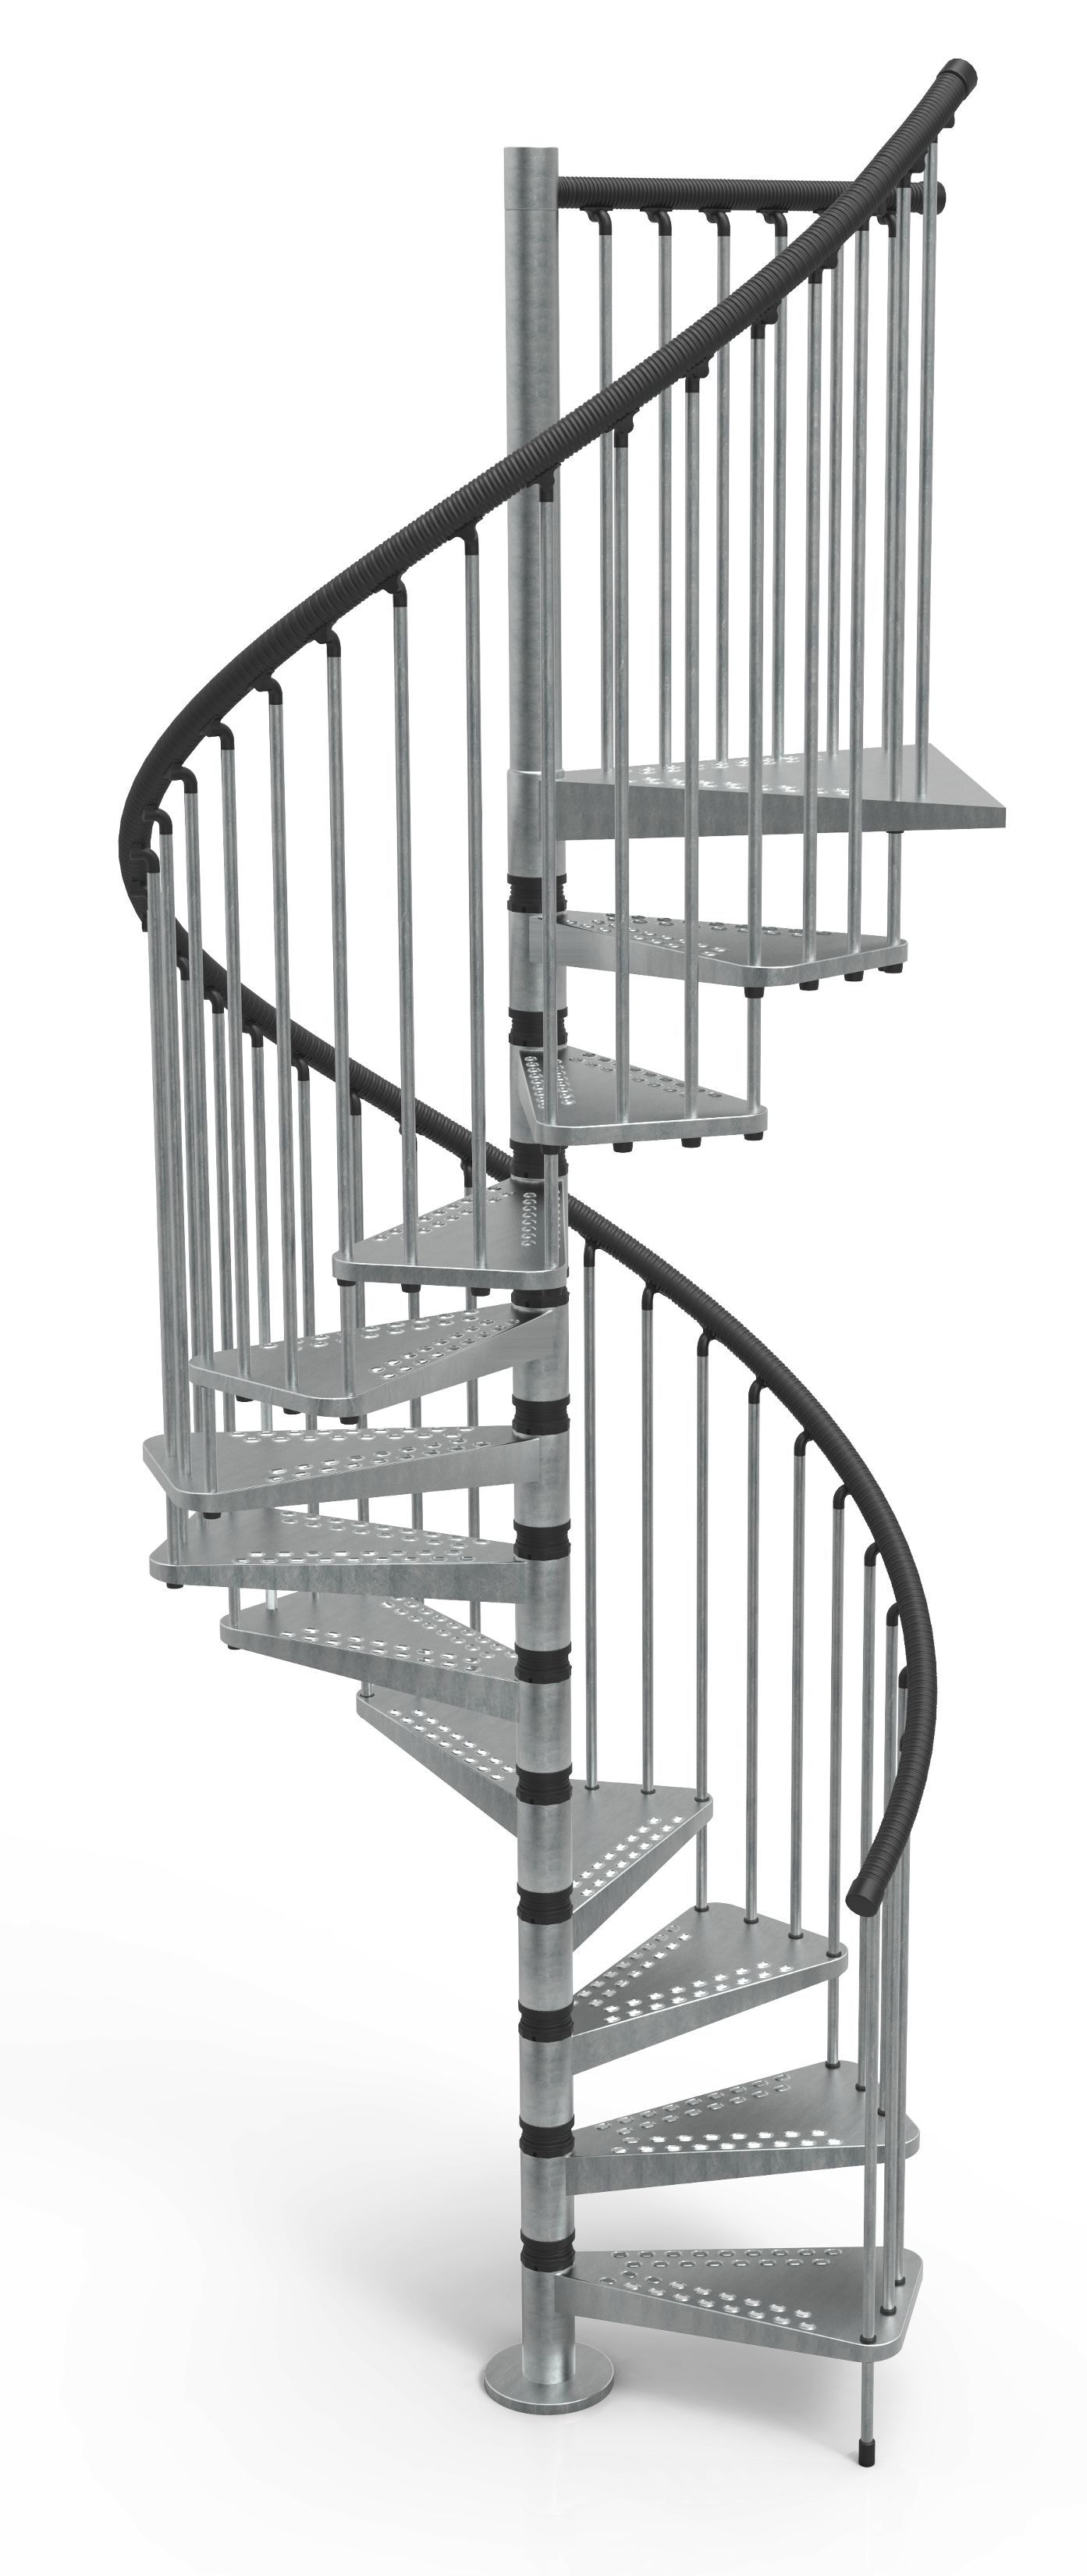 Gamia Exterior Zink Spiral Stair Kit Available In A Choice